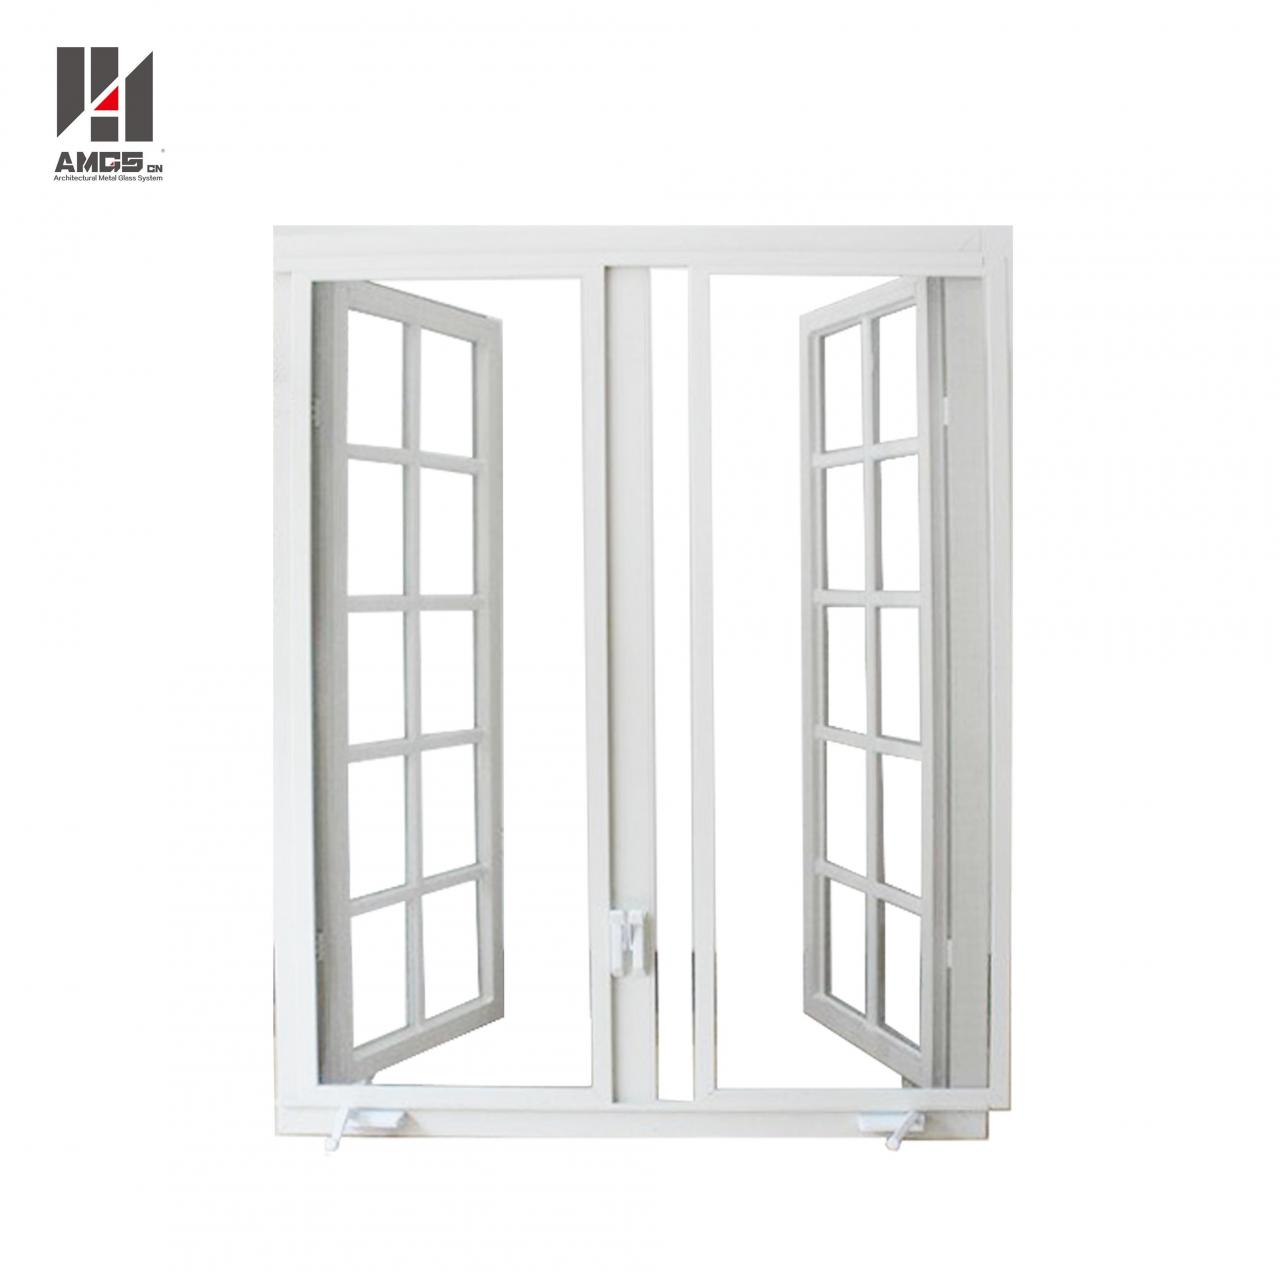 China American Grille Design Casement Aluminium Crank Windows With Tempered Glass on sale